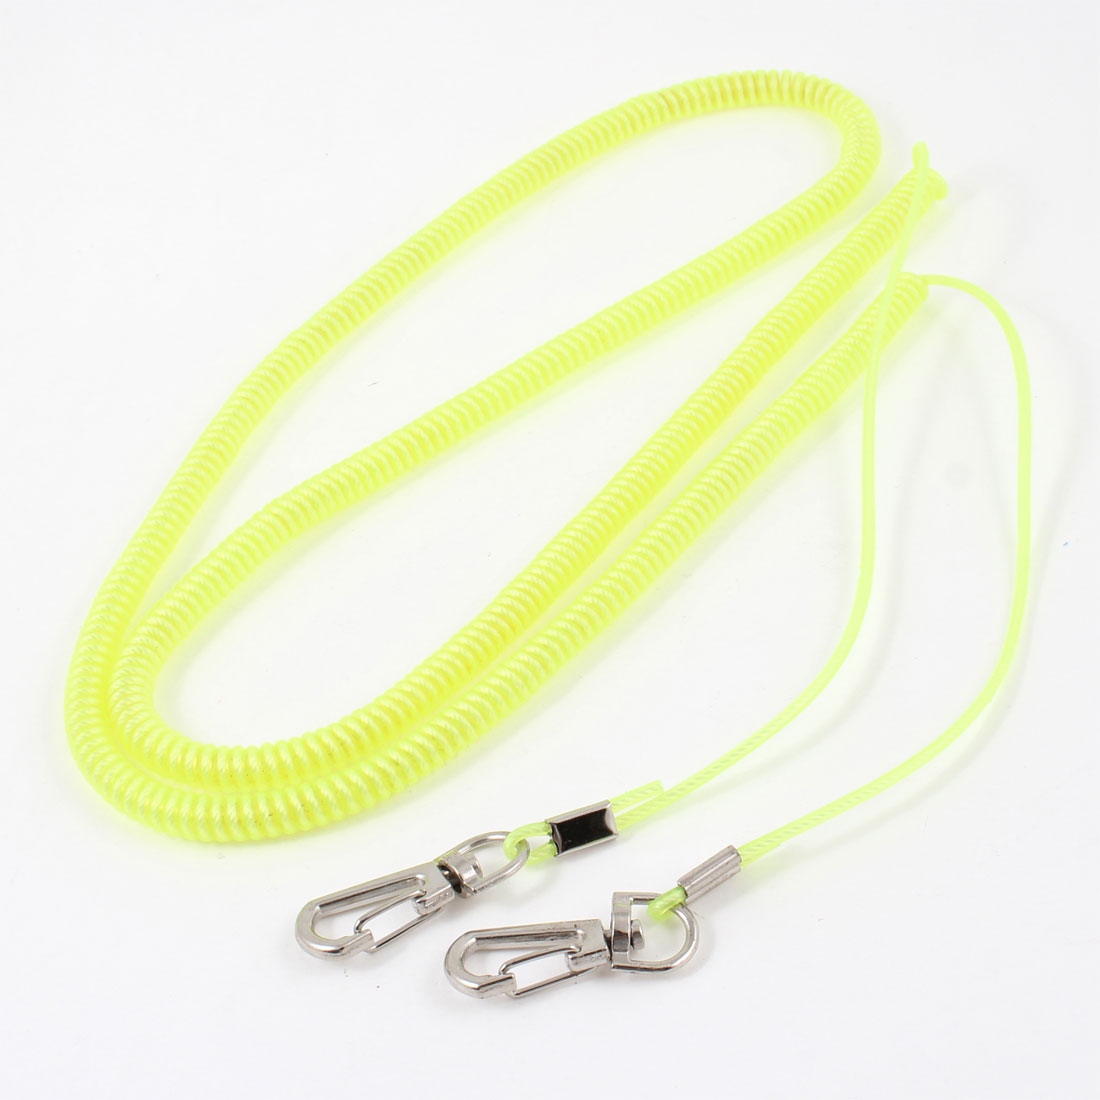 Angling Fishing Rod Lobster Clasp Yellow Flexible Coiled Lanyard Cable Cord 8M